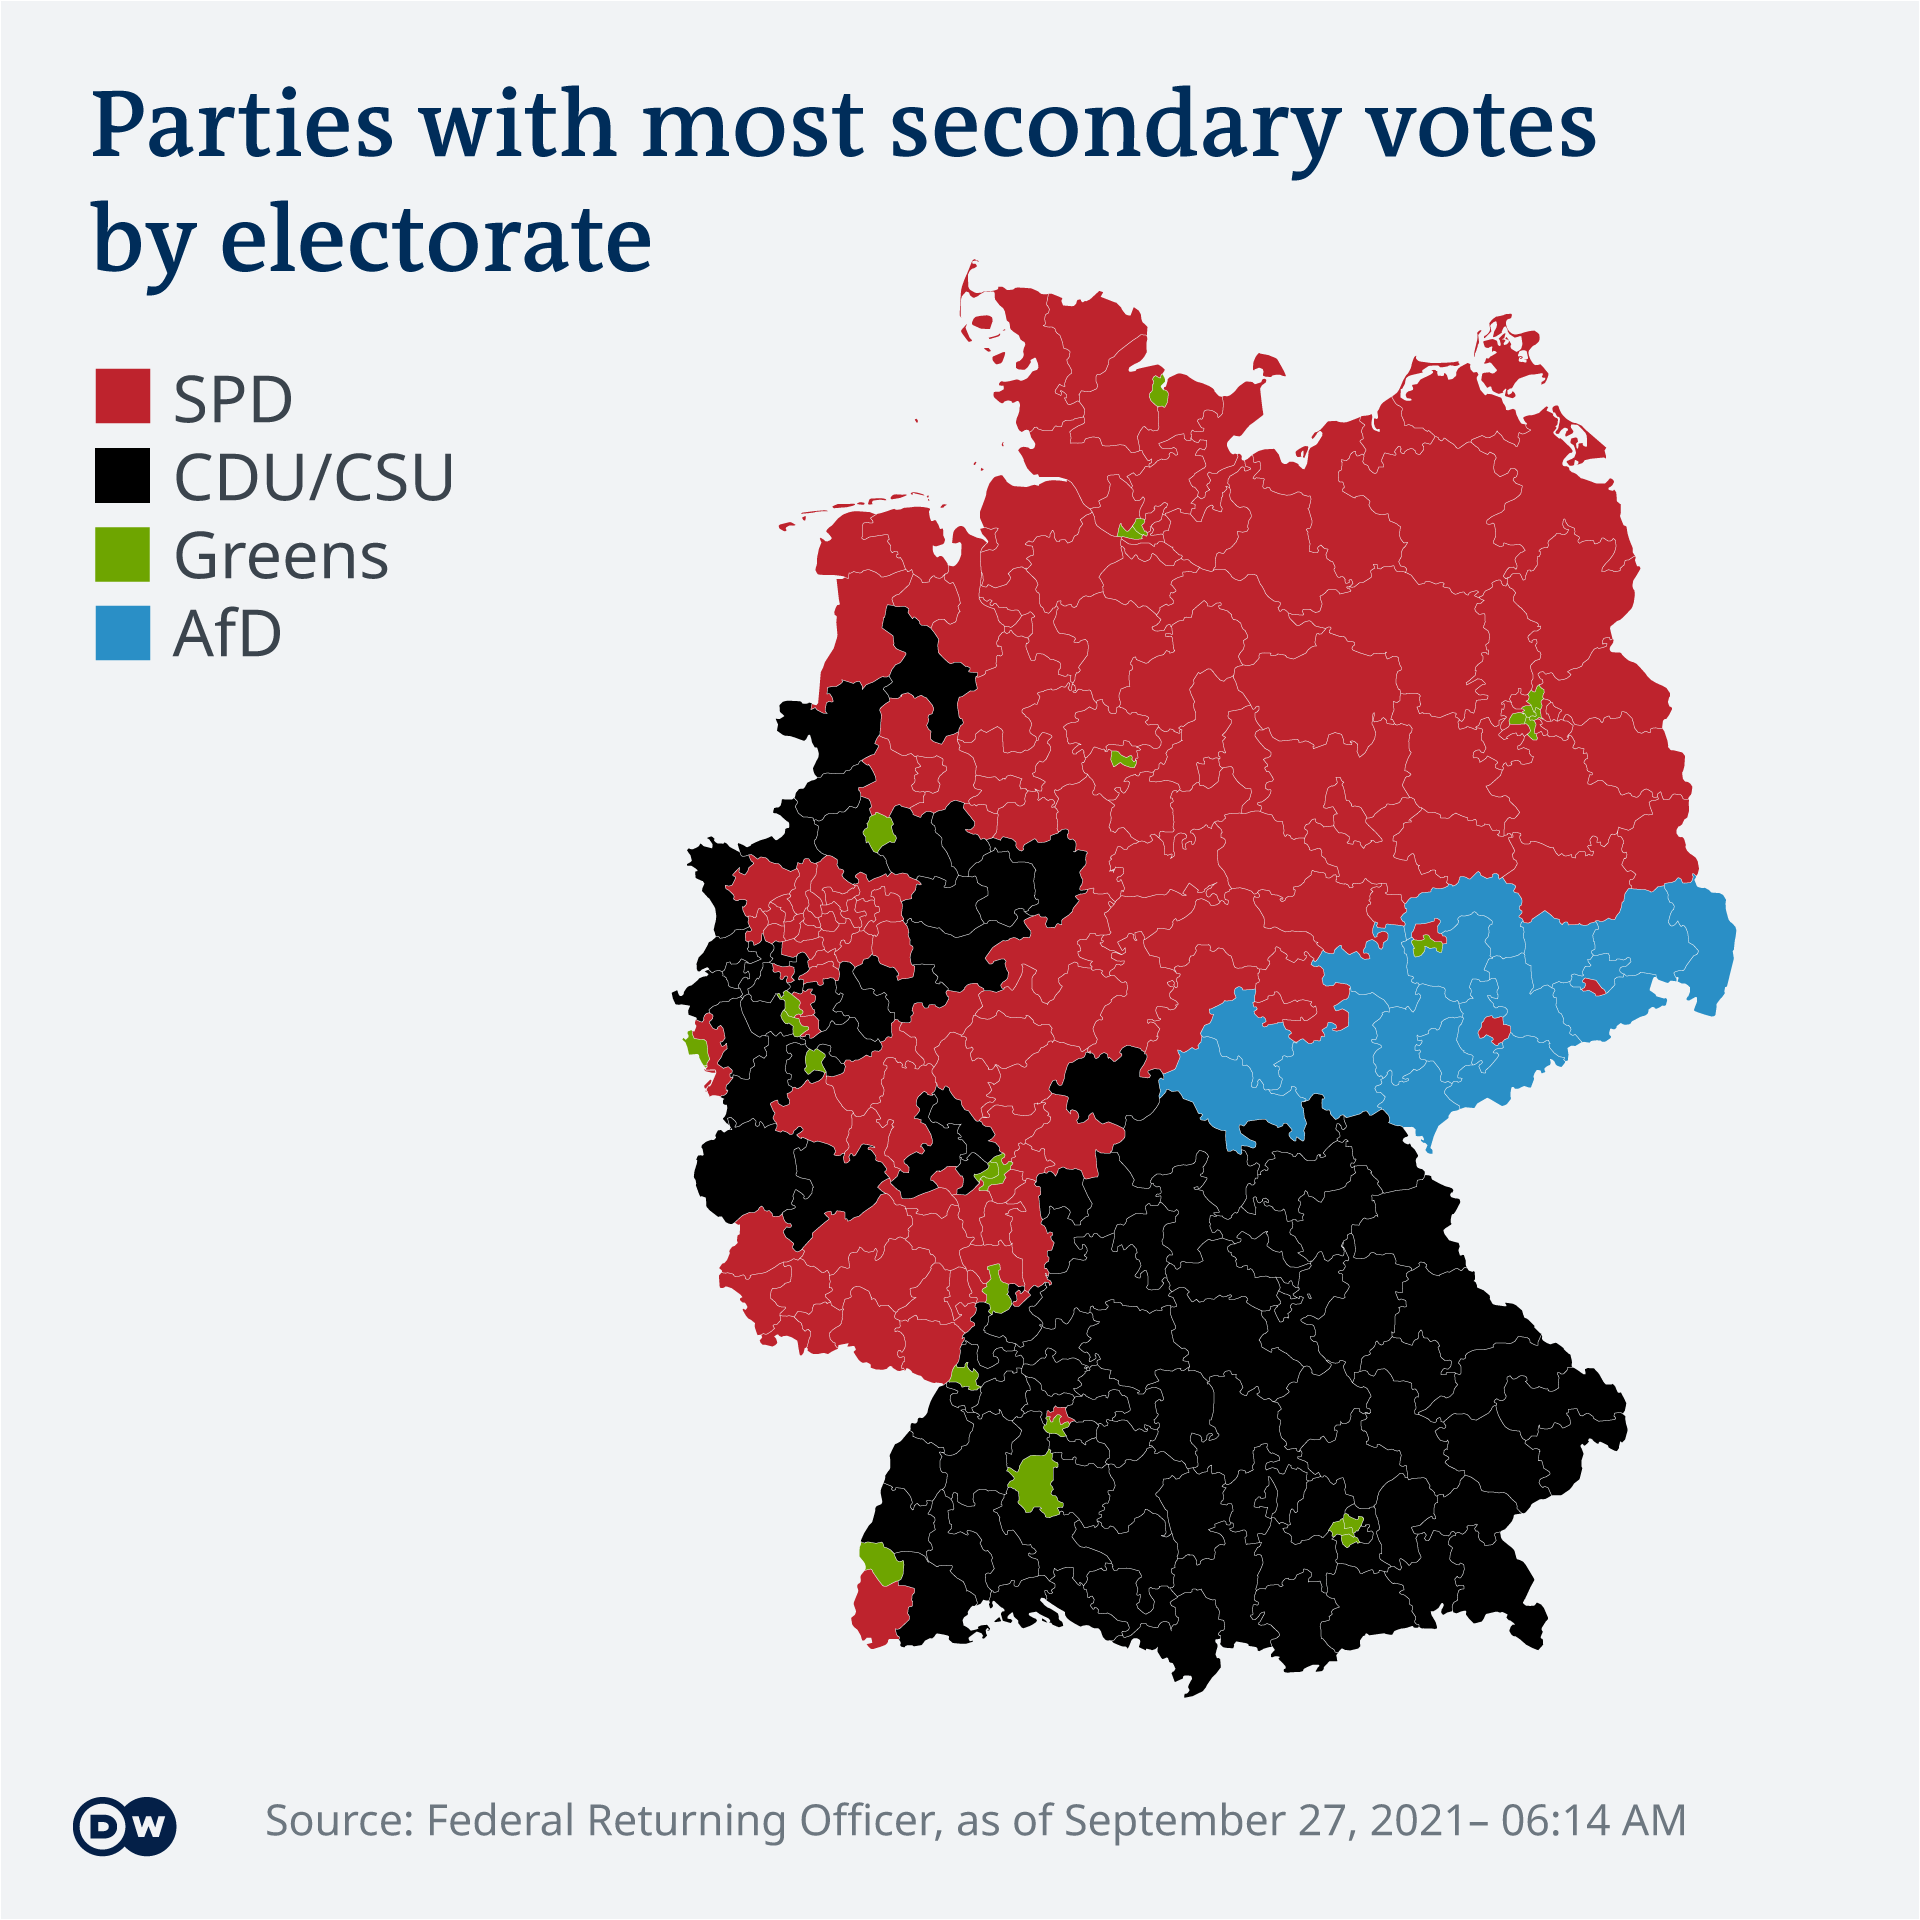 DW Infographic of 2021 German federal election results by electoral district